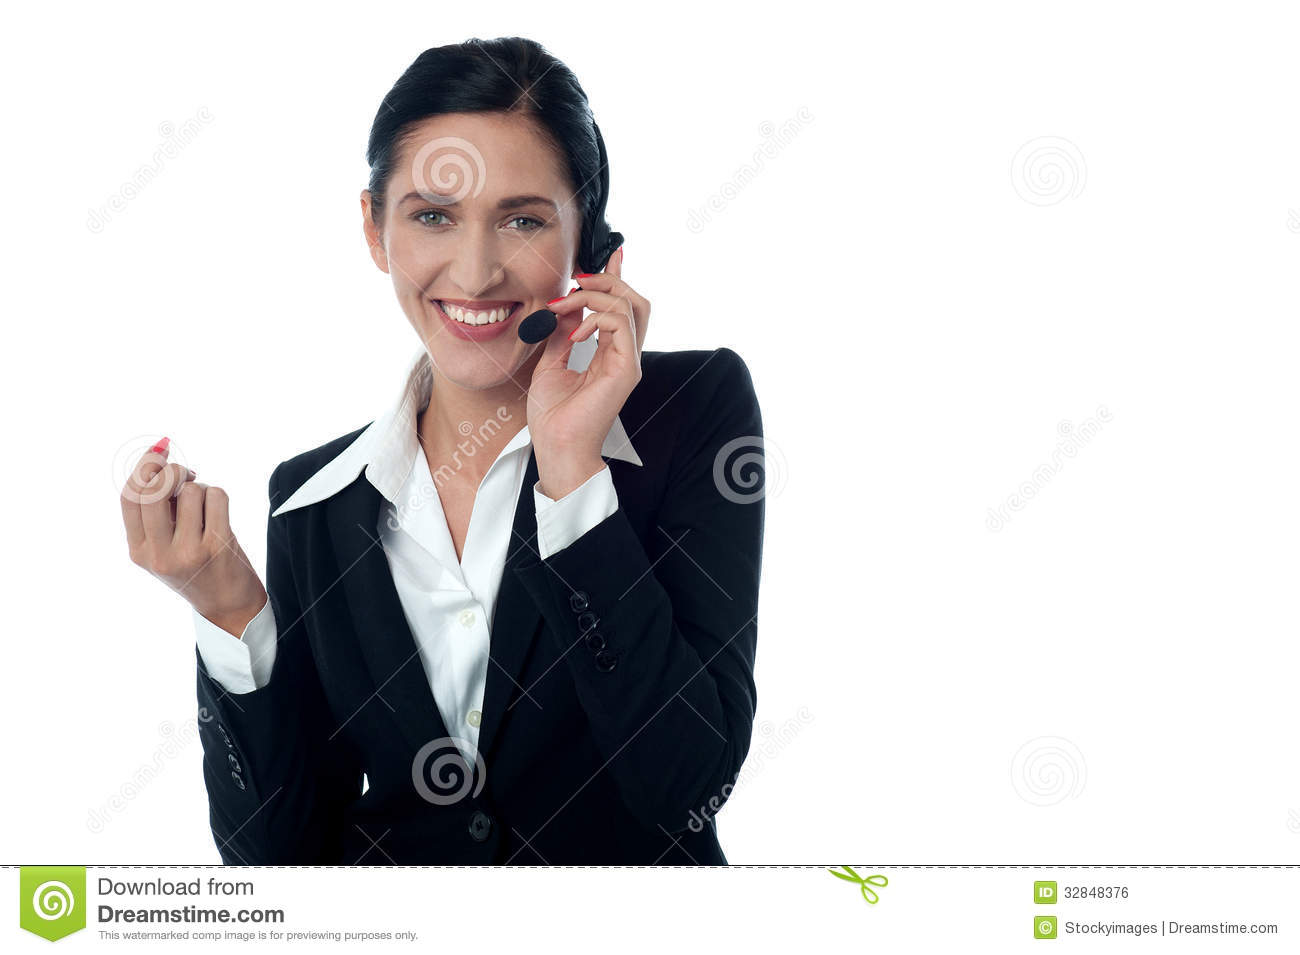 Female Customer Support Executive On Call Royalty Free Stock Image  Image 32848376